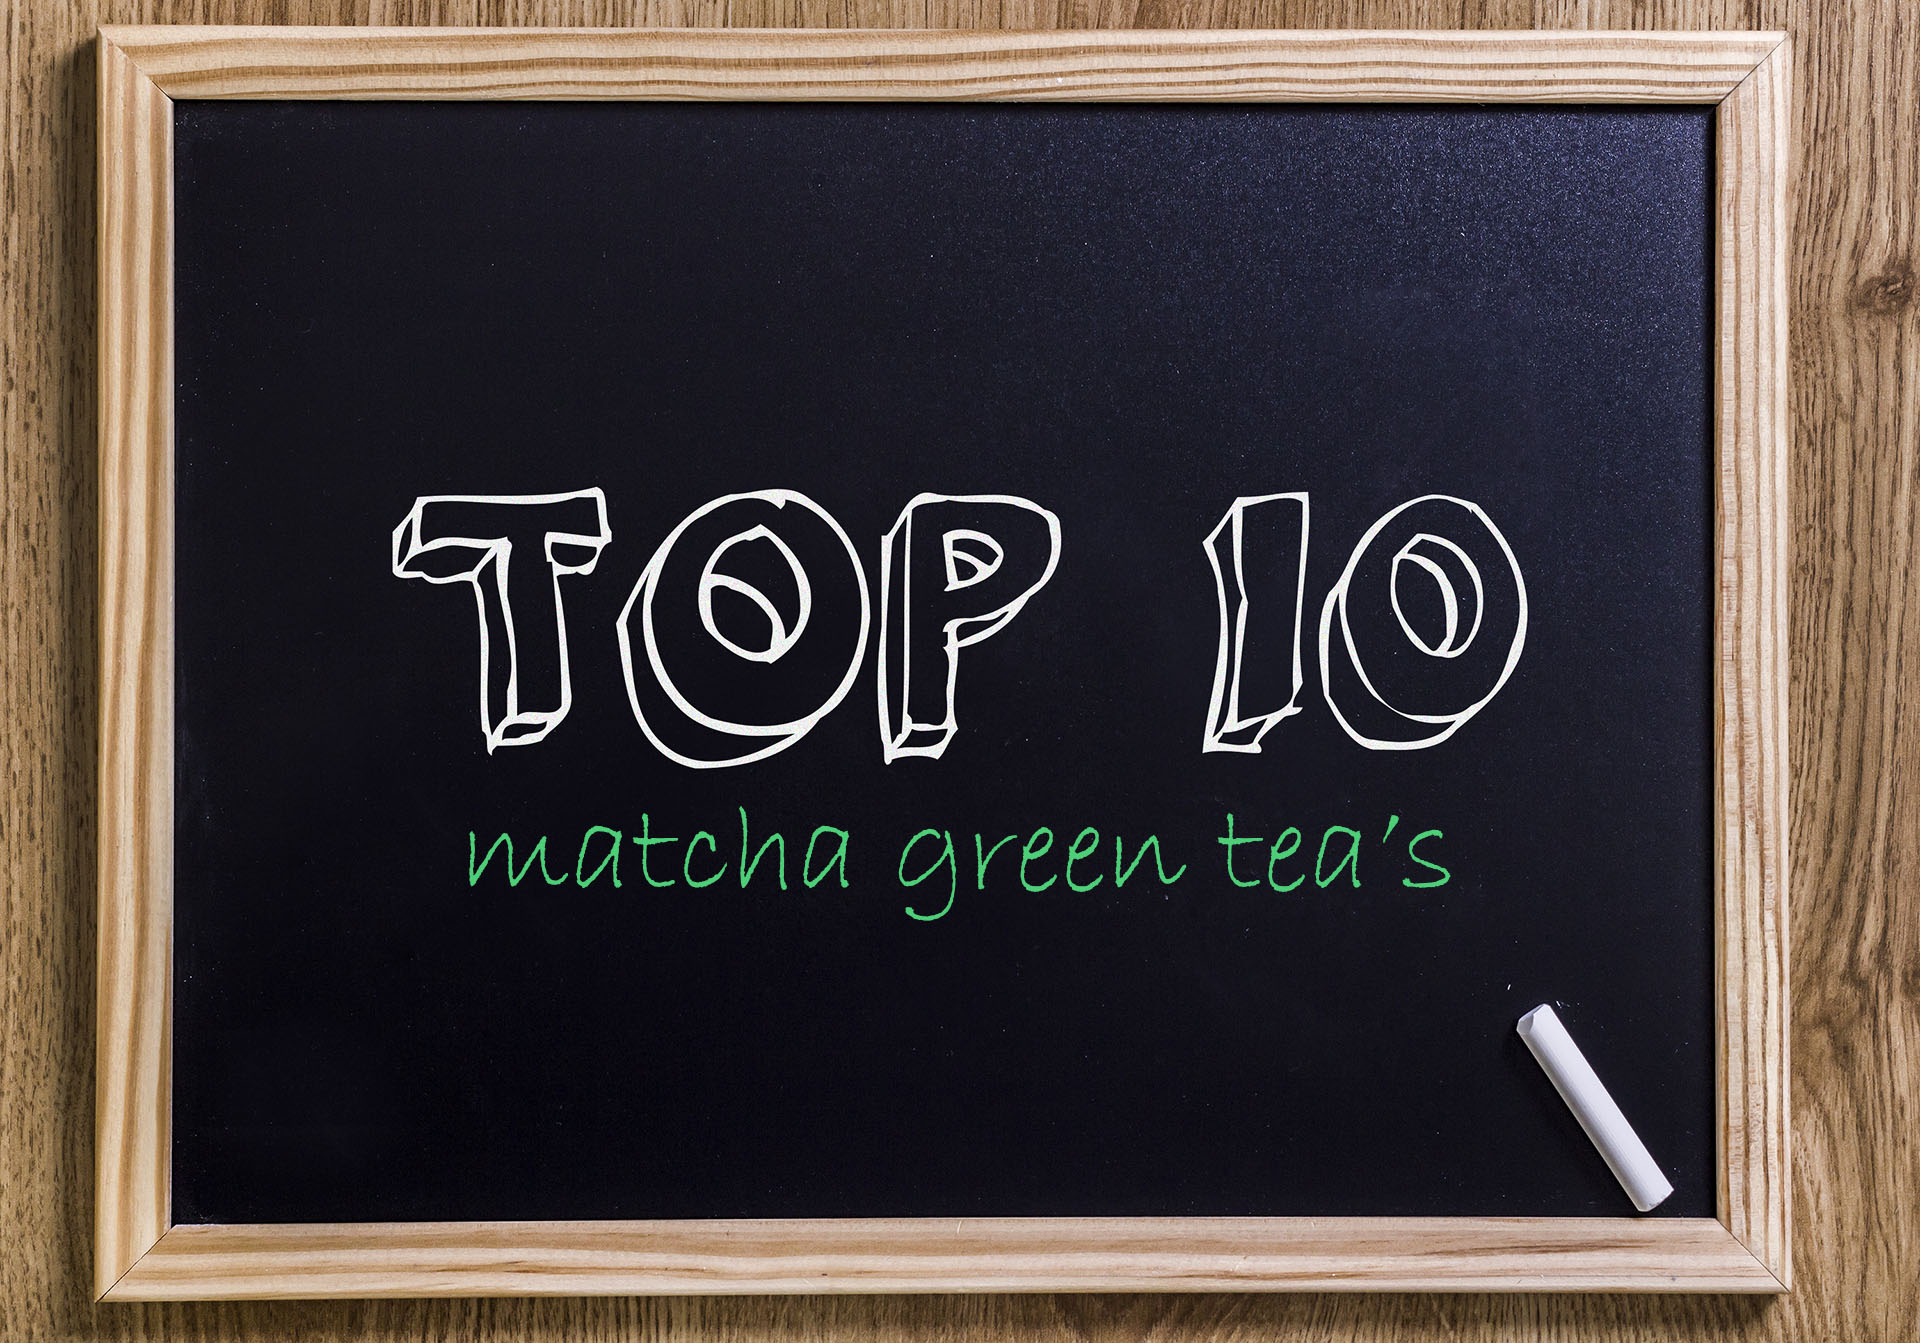 Best Matcha Tea Reviews: My 10 Ranked & Reviewed